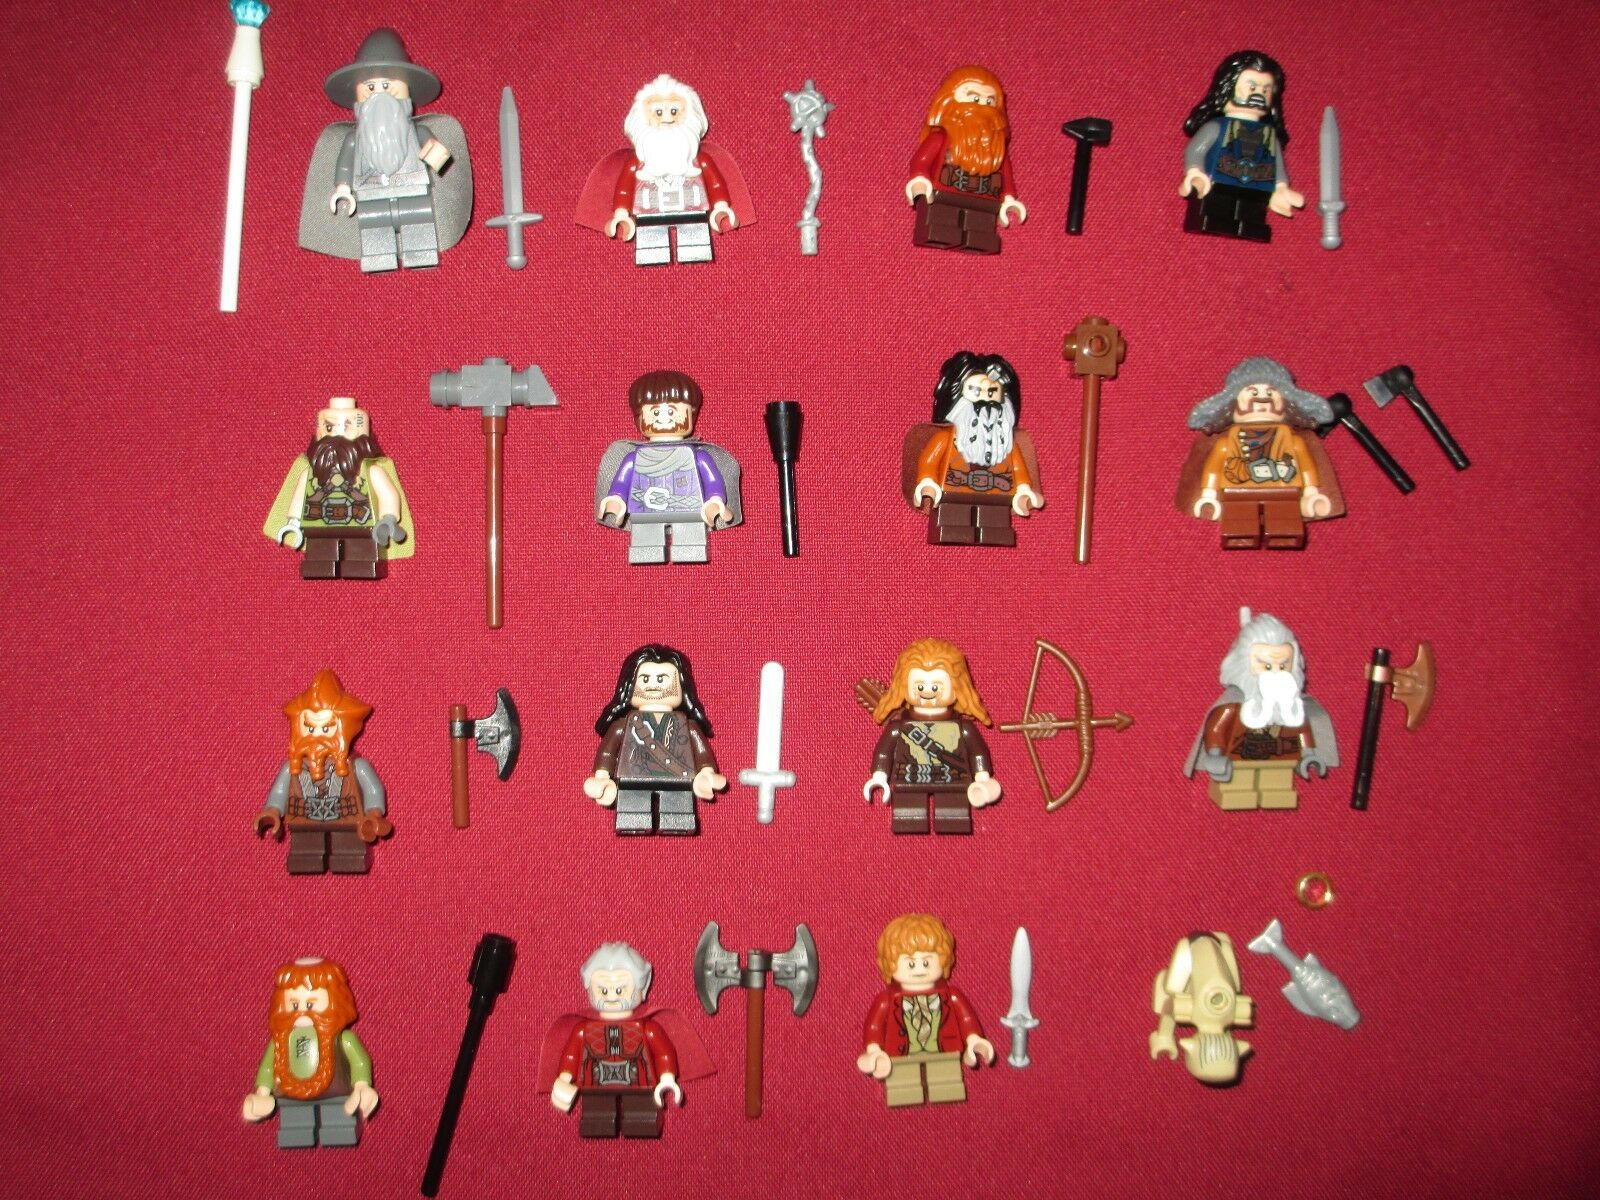 LEGO LOTR   Hobbit Minifigures Lot, Dwarves,Gollum,Gandolf,Weapons ETC